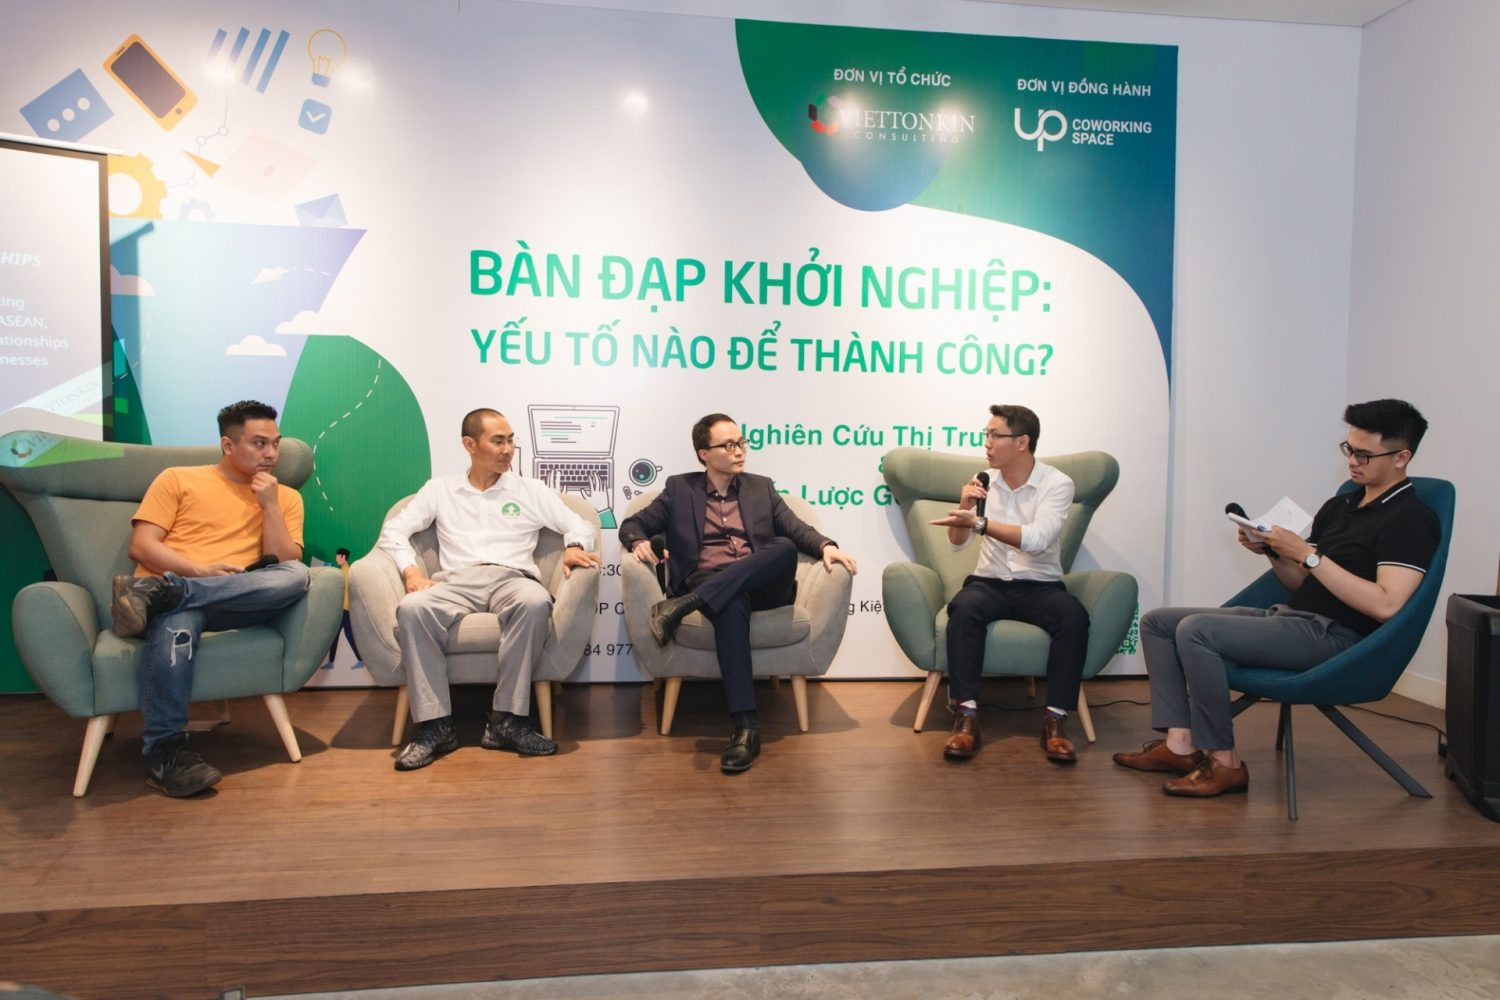 Vietnam Startup Do Not Rely Solely on Statistics